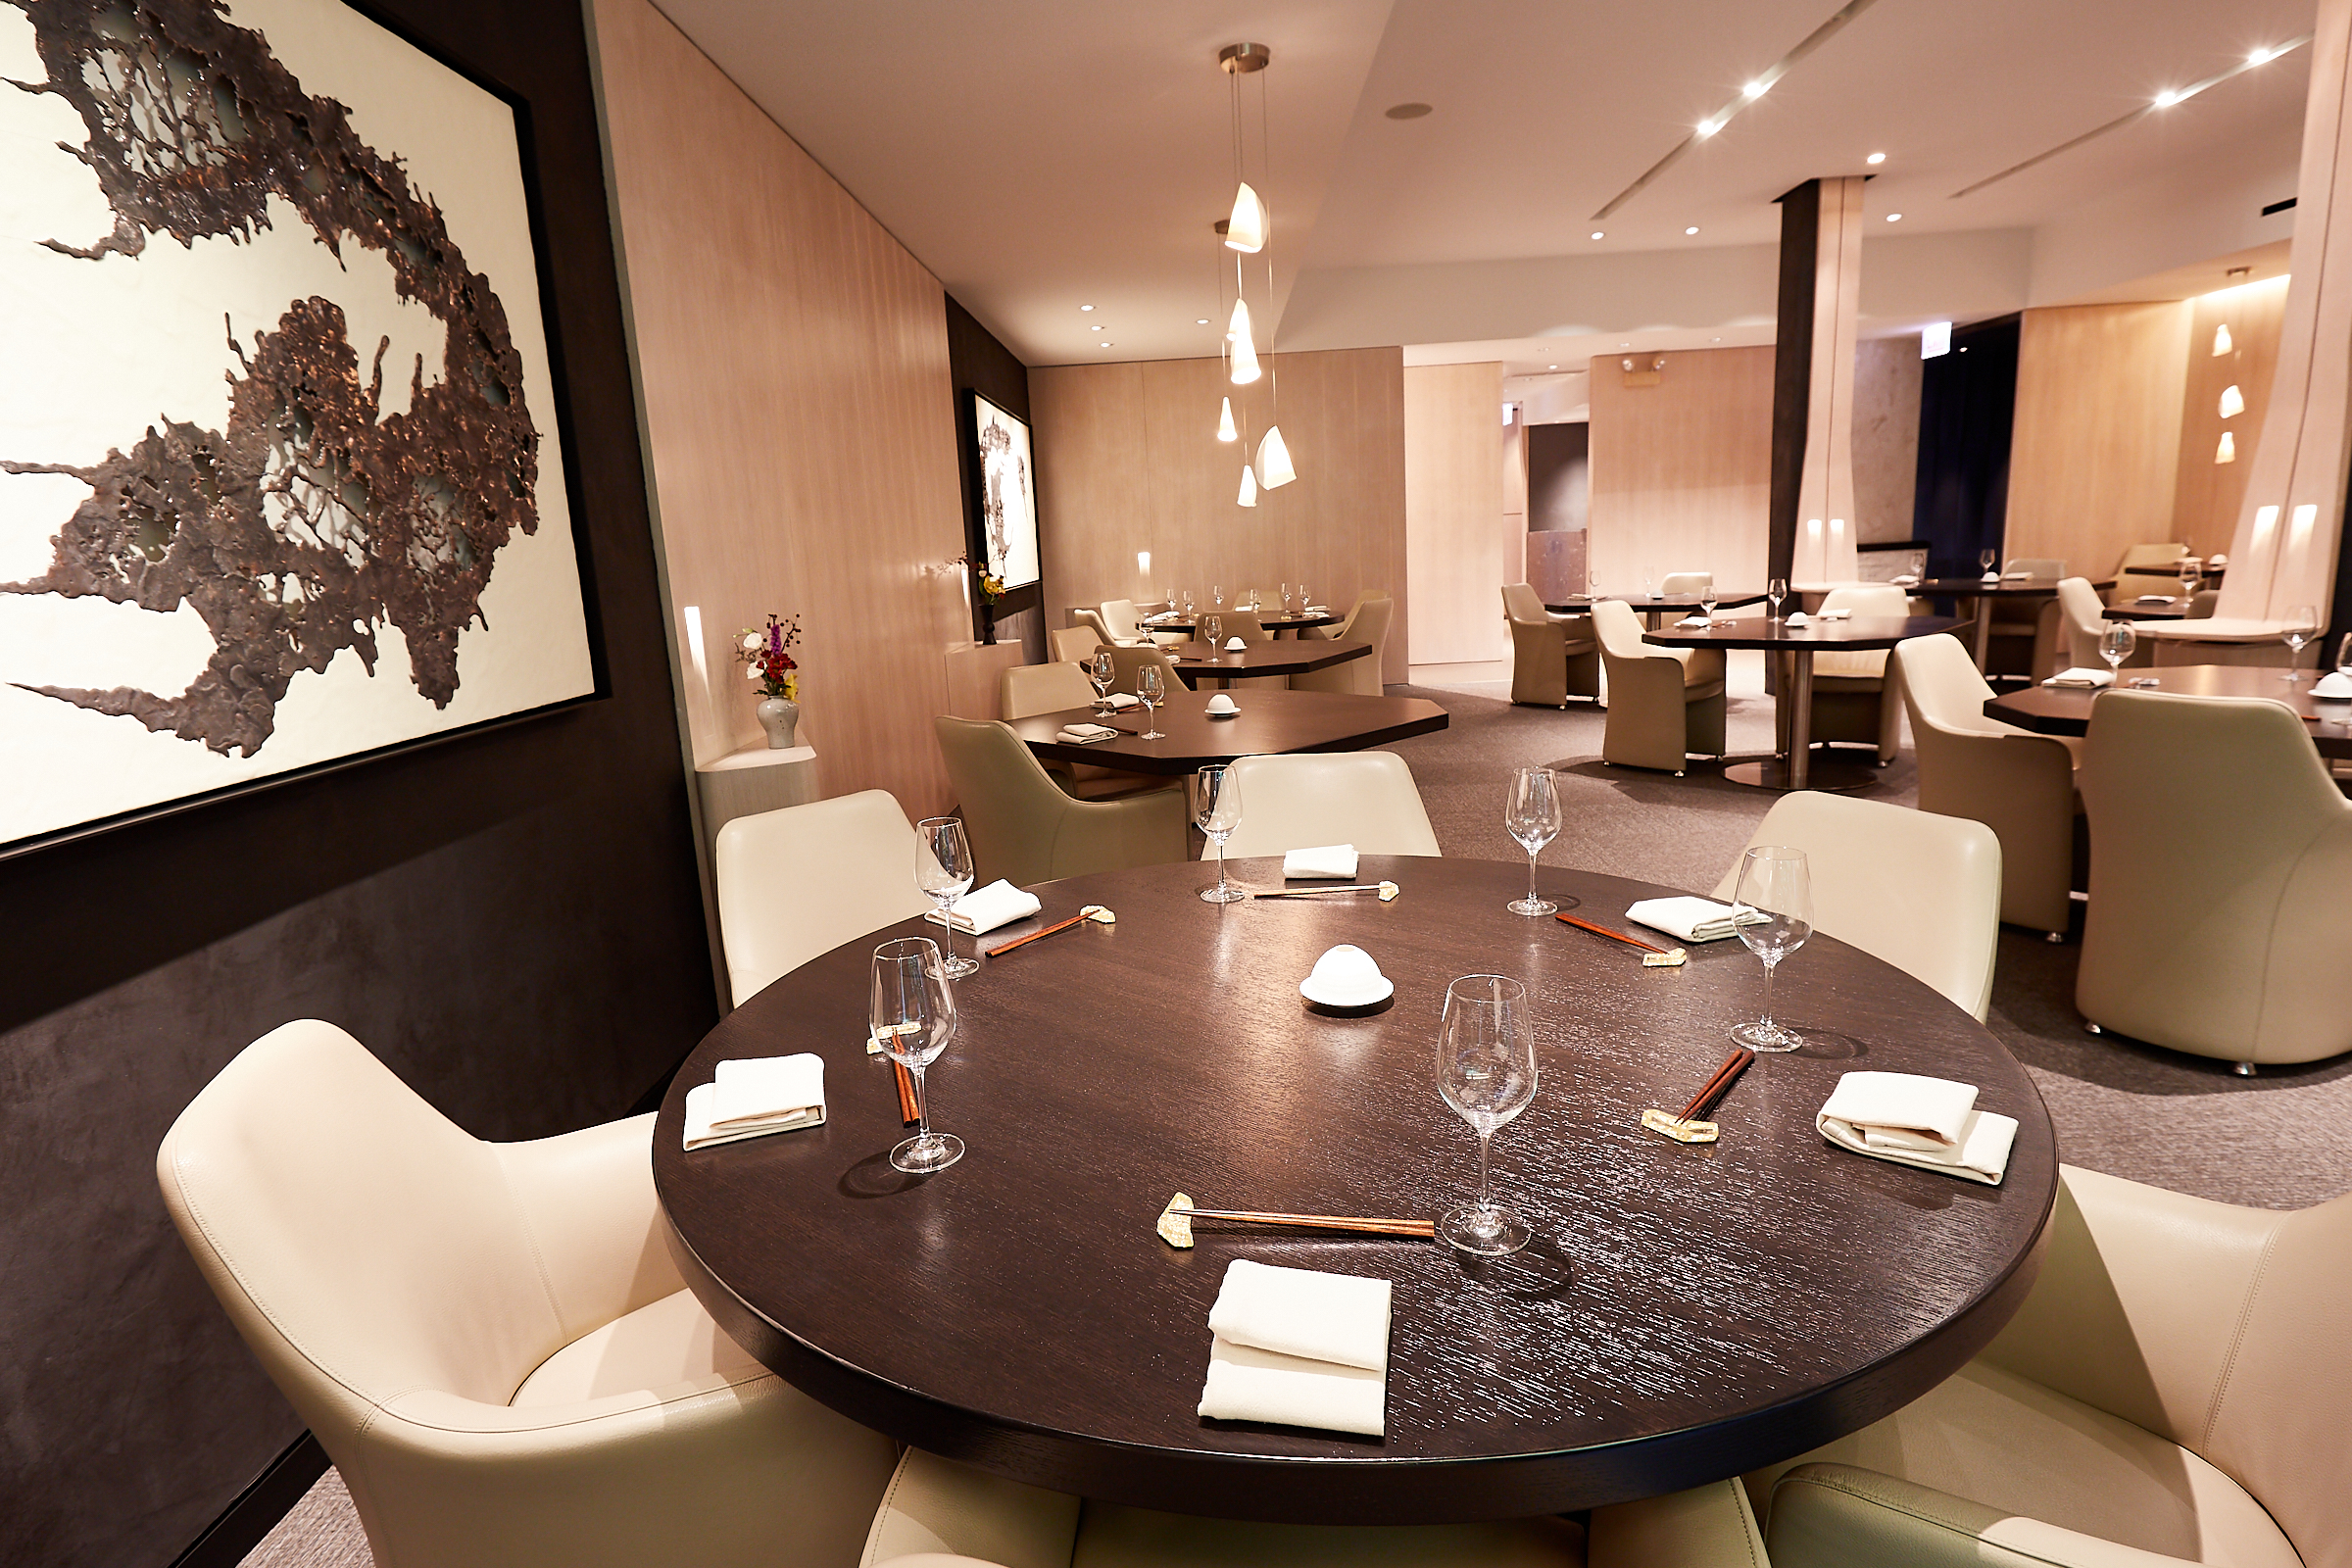 A fancy black-and-white restaurant dining room